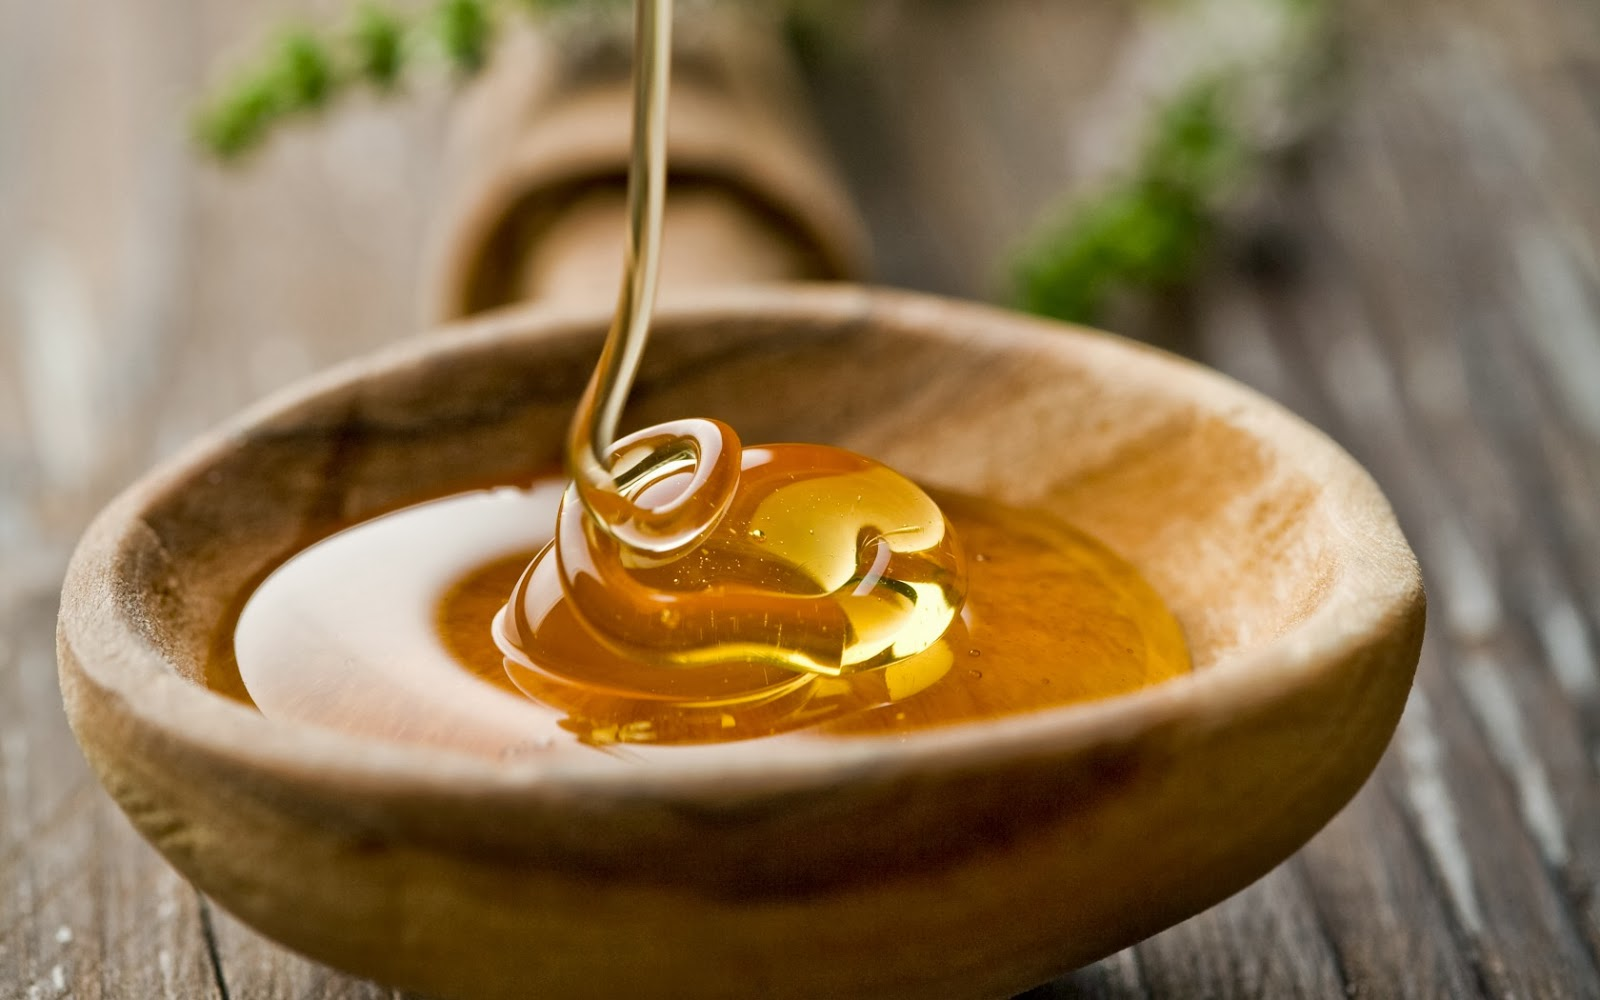 Honey - the best natural remedy for different health problems